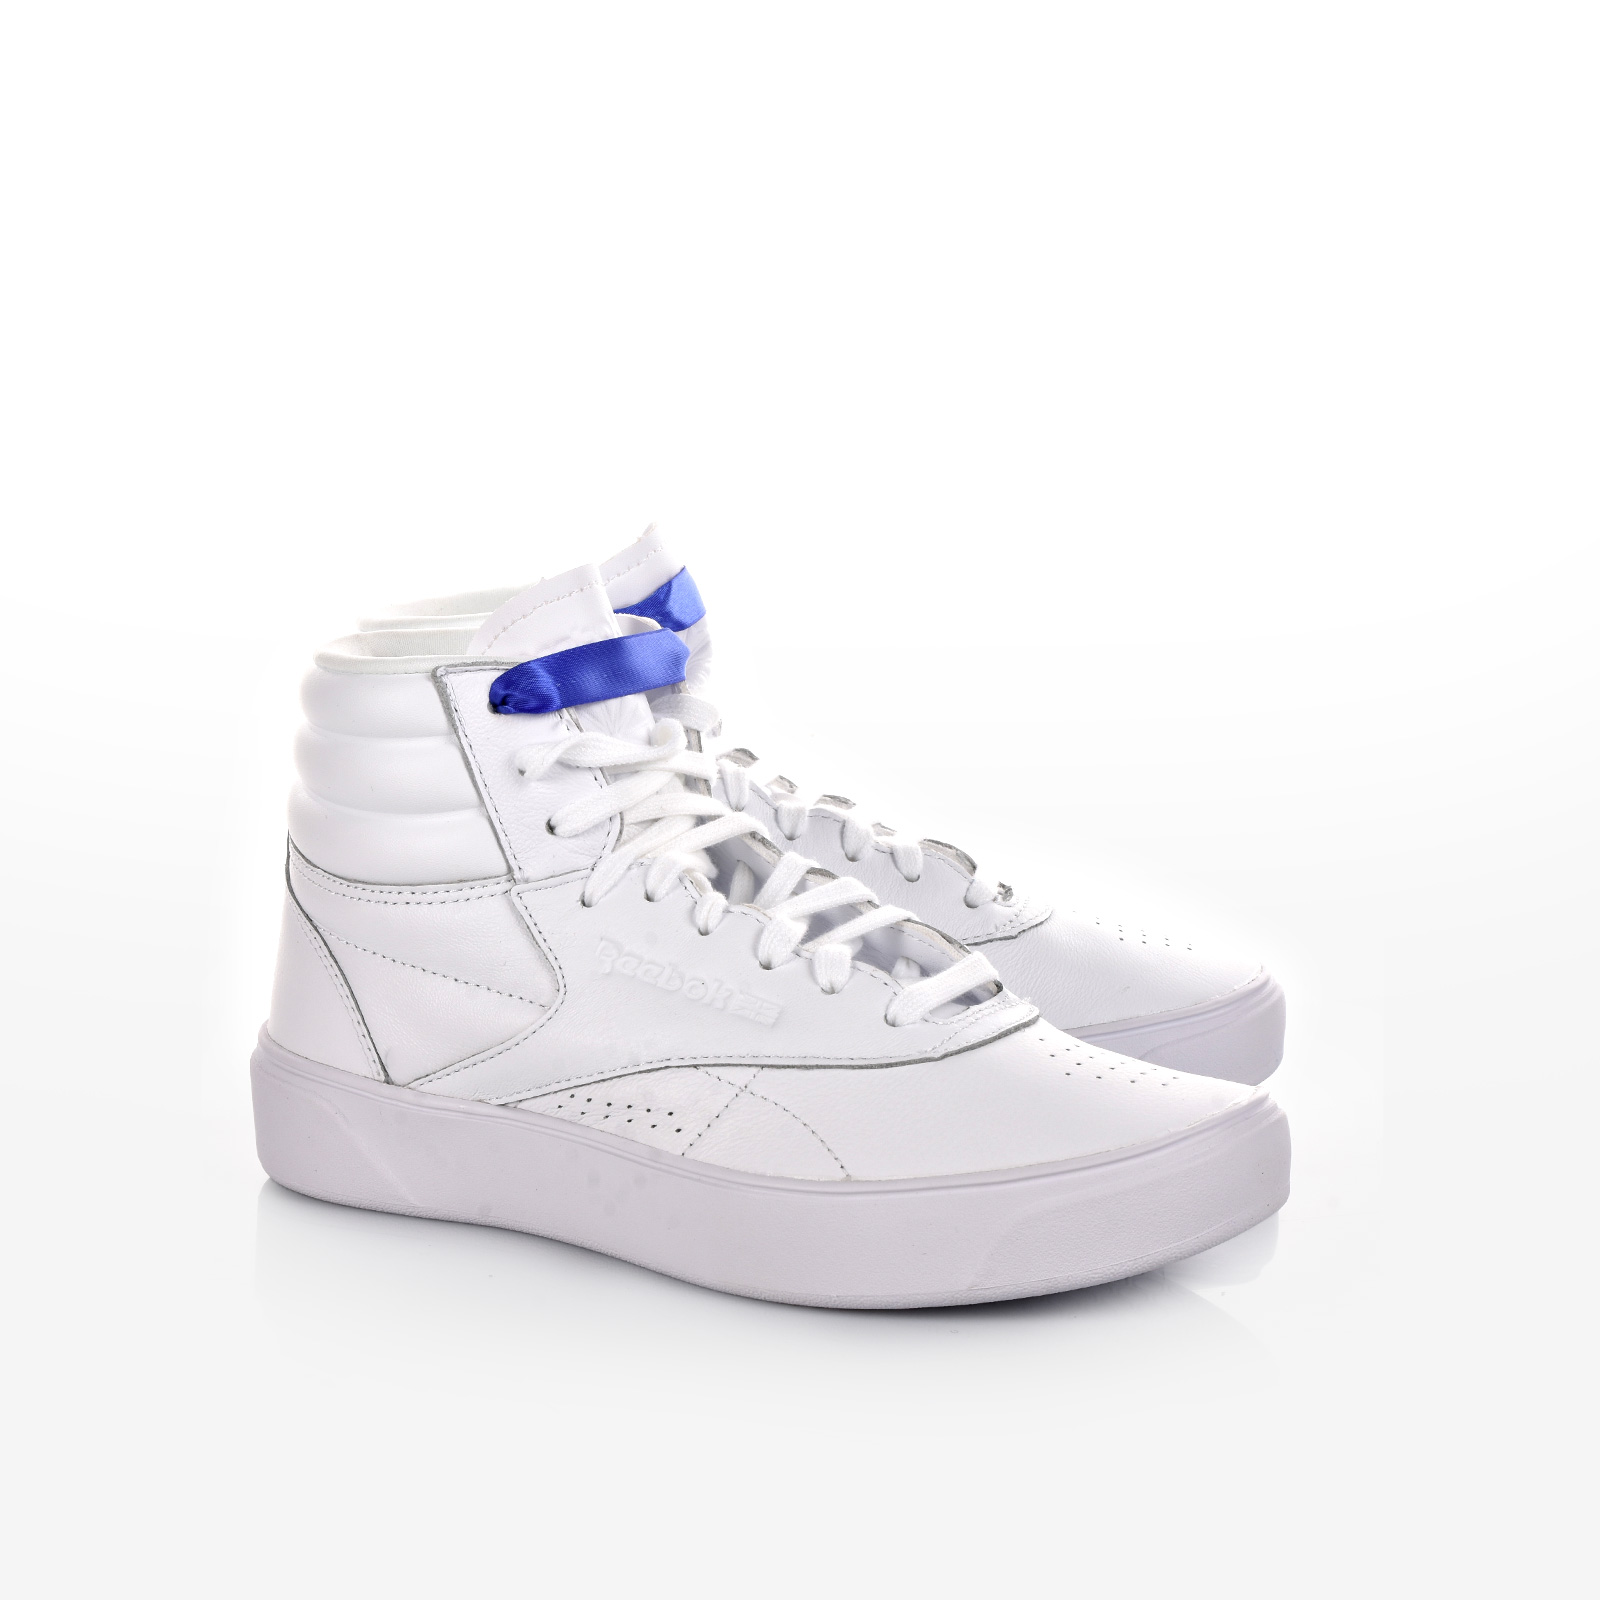 Reebok - FREESTYLE HI NOVA - MID-WHITE/ULTRA PURPLE